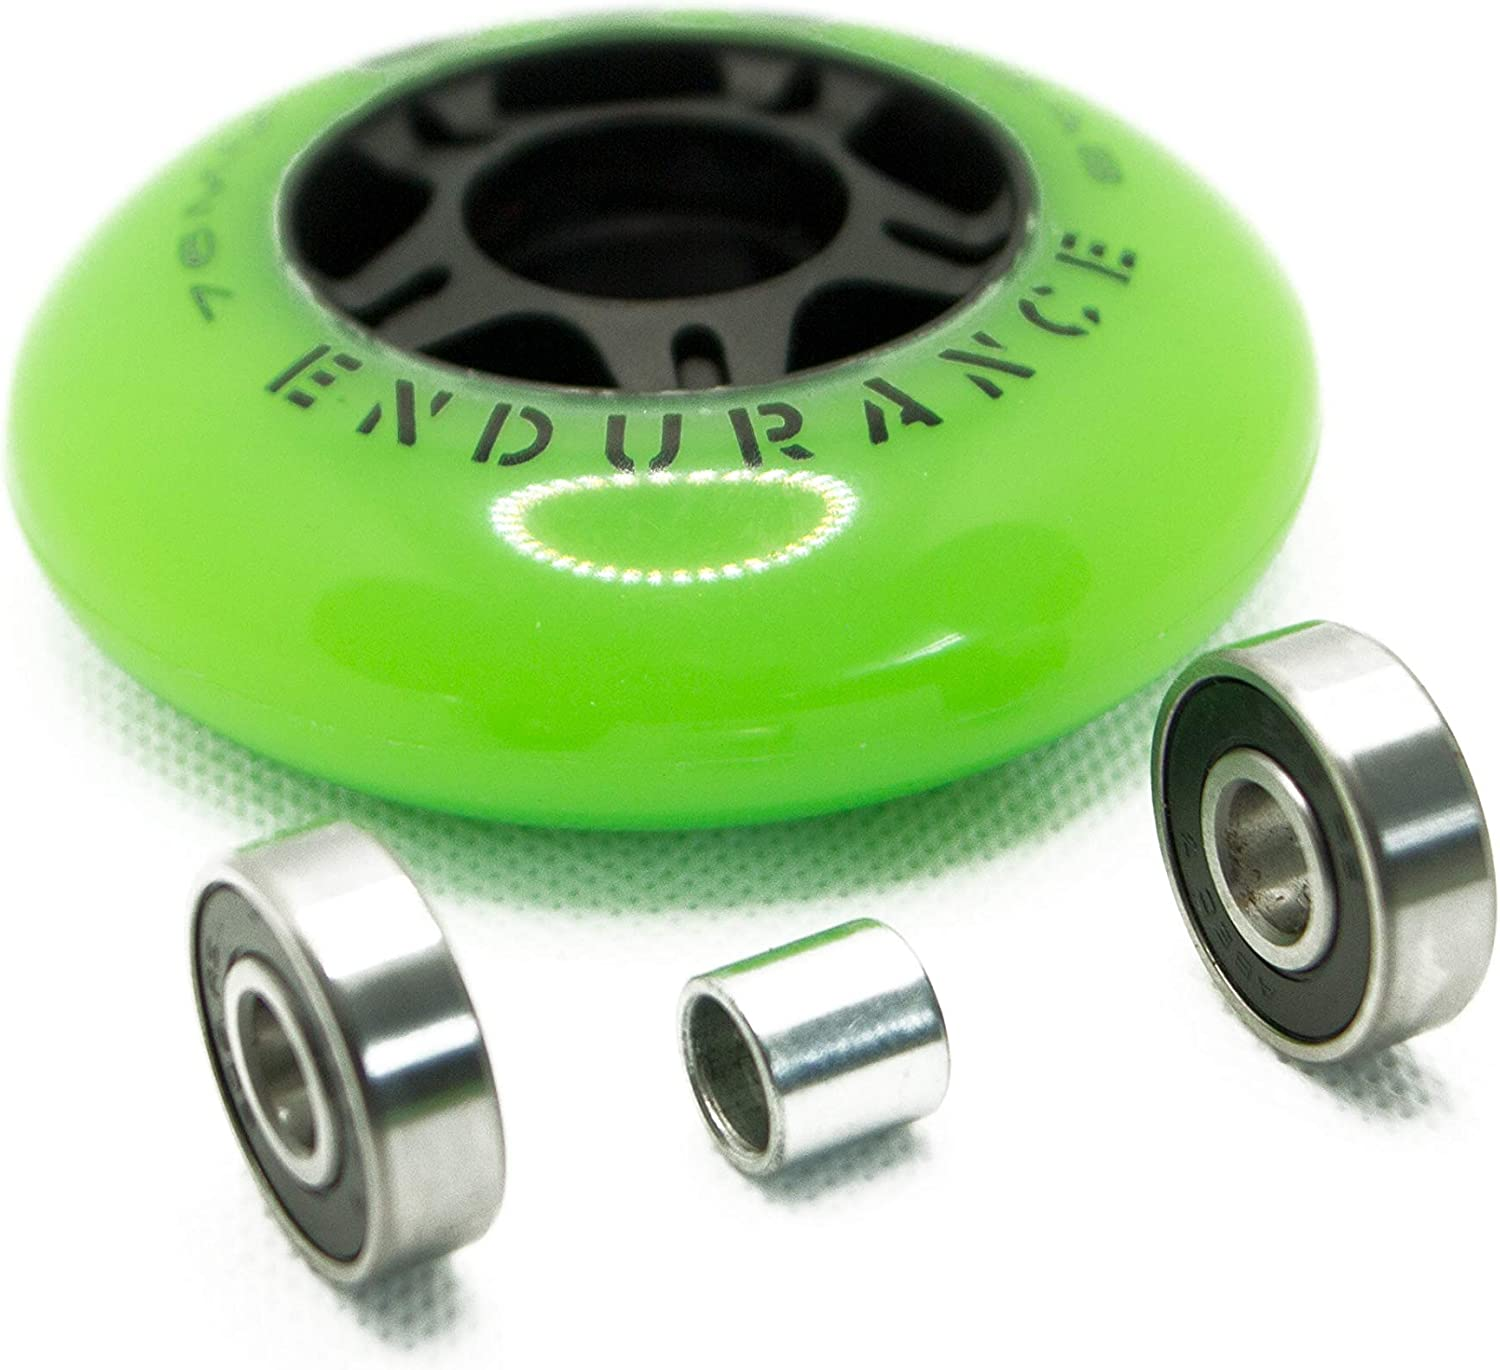 Razor Ripsurf Performance Caster Board Replacement 68mm 76mm 80mm 90a with ABEC 7 Speed Bearings 2 Pack Set of Two Ripstick Luggage Scooter Inline Ripstik Wheels by KBS